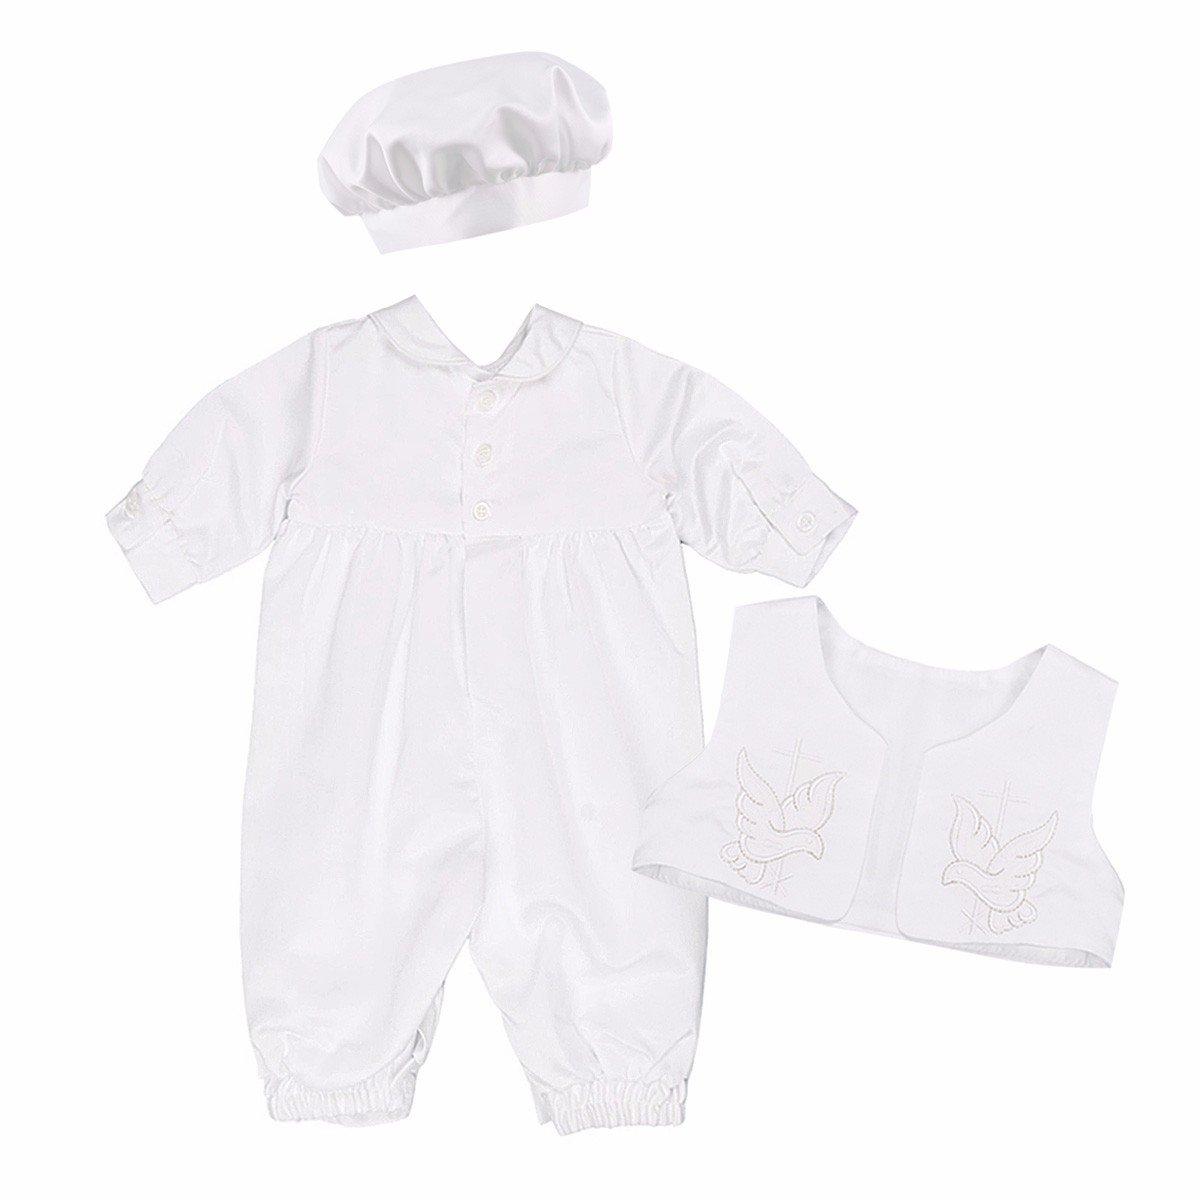 YiZYiF Baby Boys Classic Baptism Christening Party Outfits Long Sleeve Rompers with Vest and Hat Set